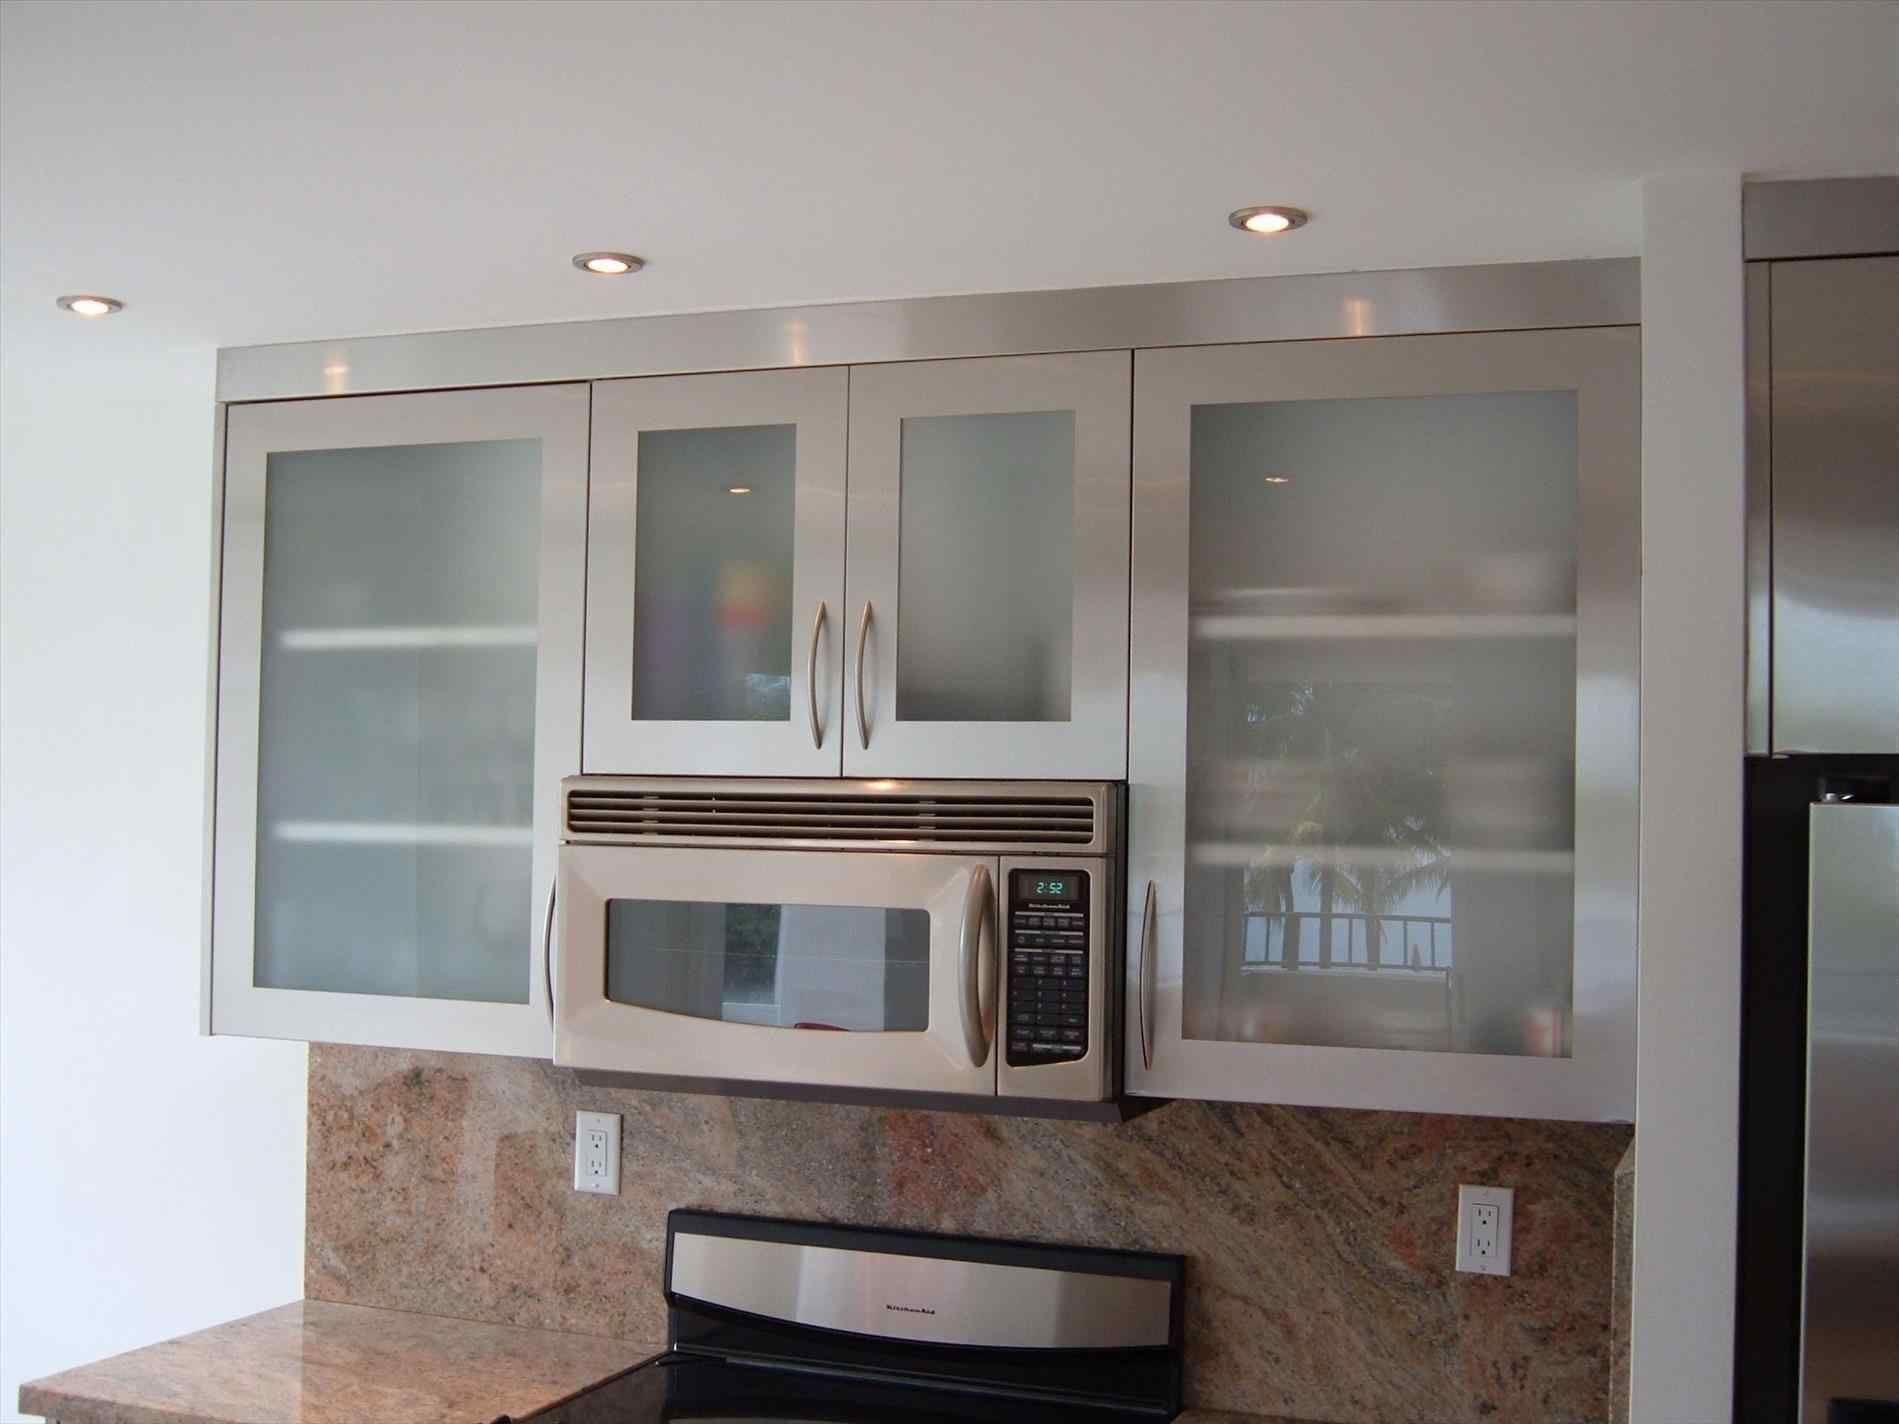 25 Awesome Glass Types For Kitchen Cabinet Doors Breakpr Glass Kitchen Cabinet Doors Glass Kitchen Cabinets Steel Kitchen Cabinets